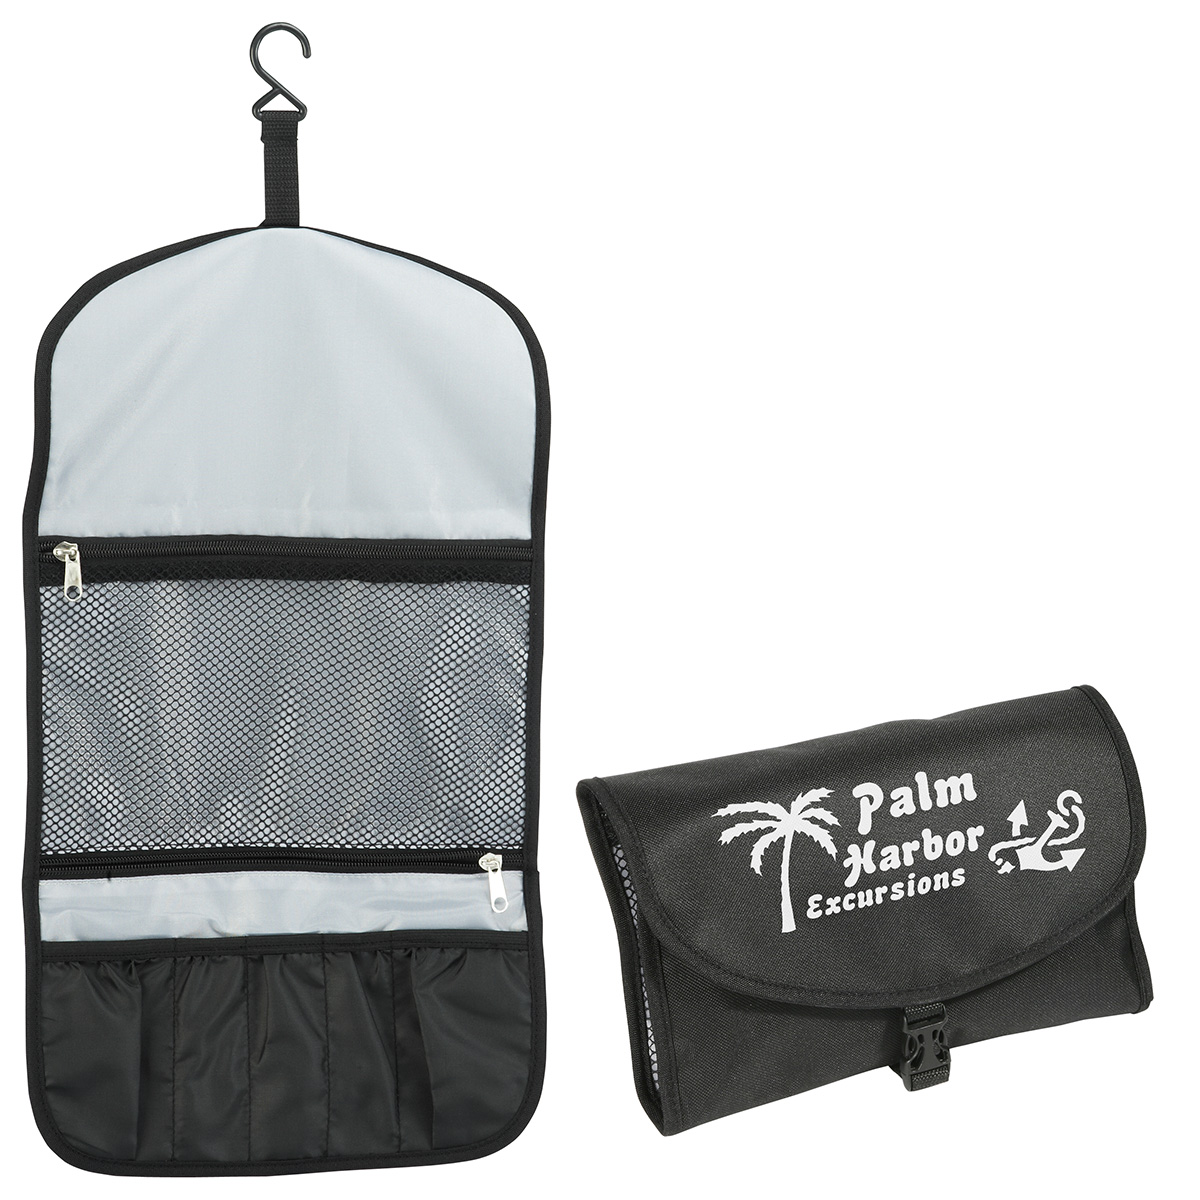 Tradewinds Travel Toiletry Bag, WBA-TB10 - 1 Colour Imprint